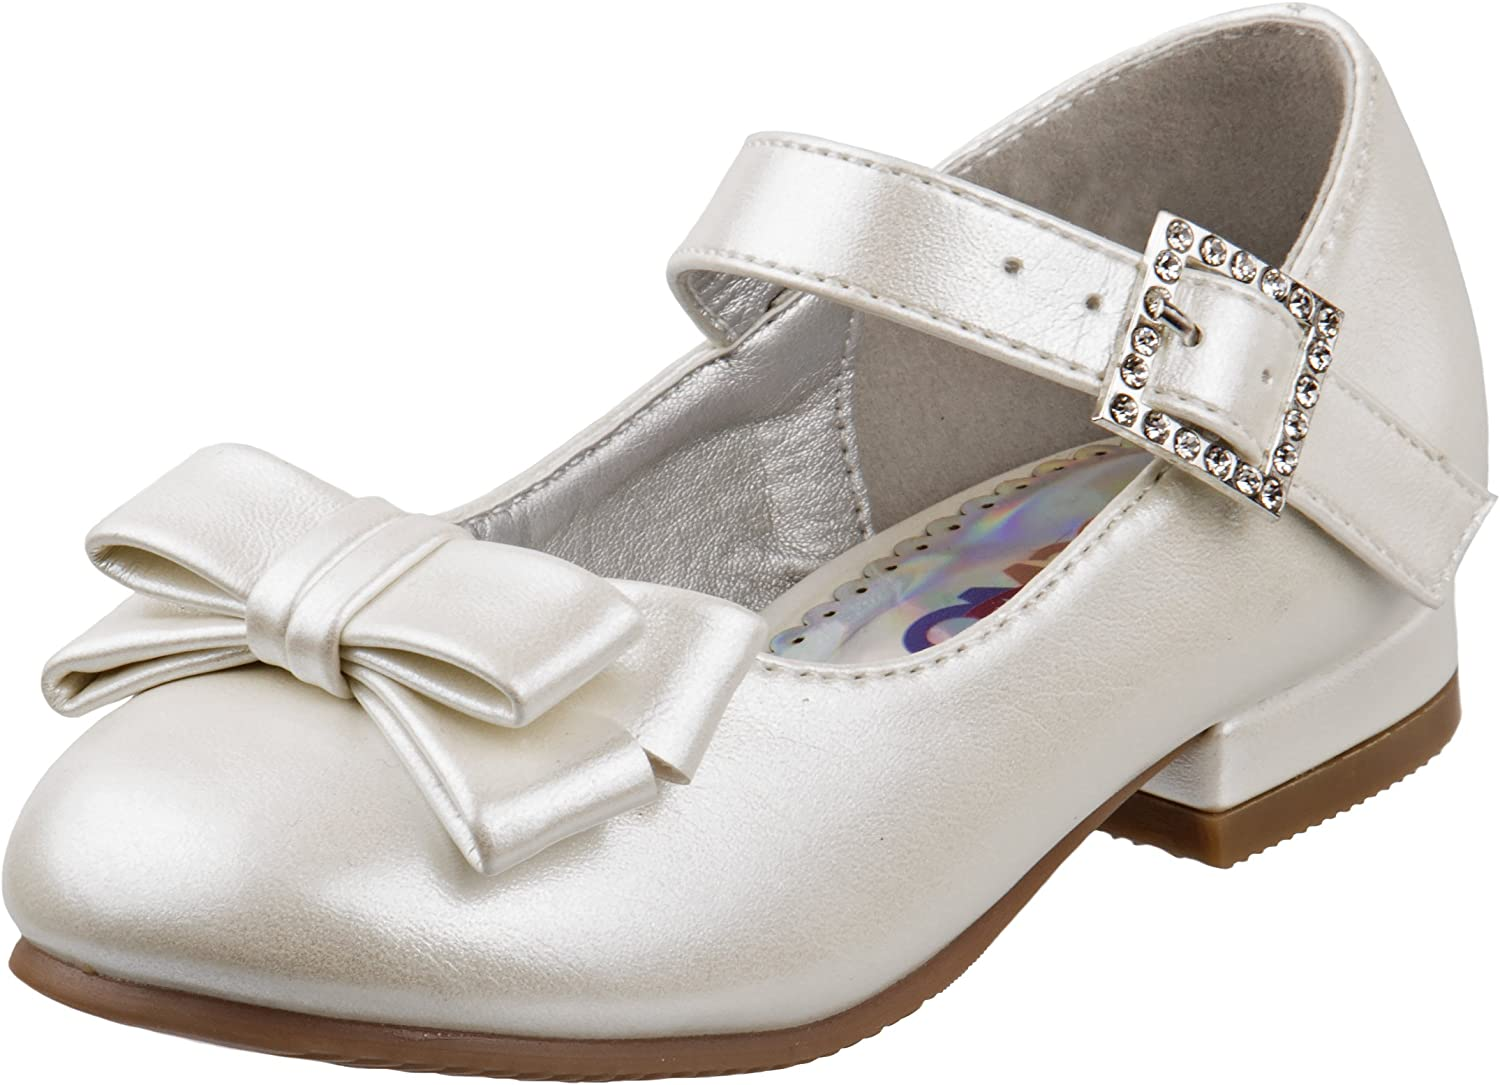 Josmo Girls Low Heel Dress Shoes with Rhinestone Buckle and Flower (Toddler, Little Kid)